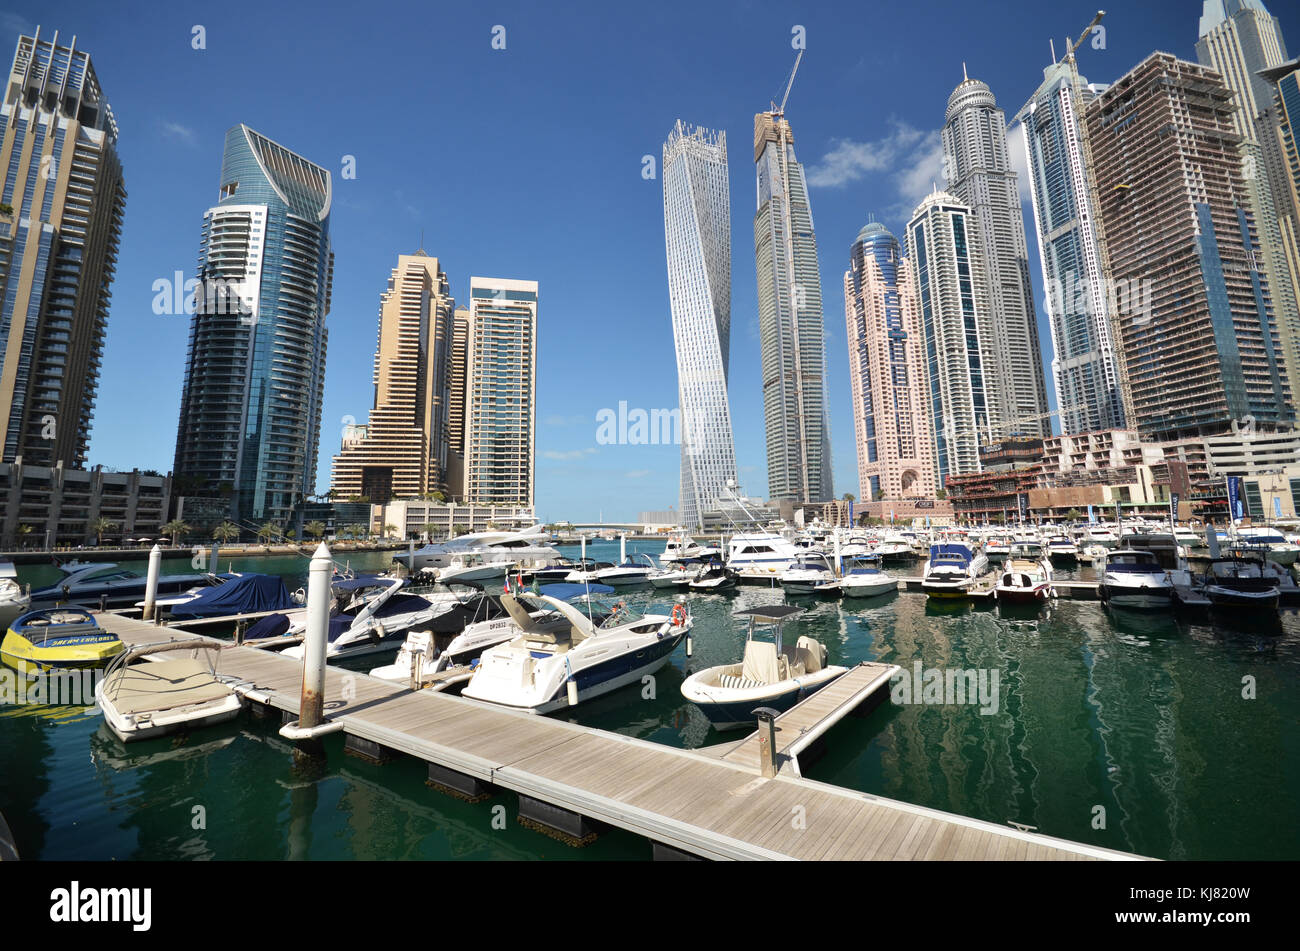 Boats on marina in Dubai with tall city skyscrapers in background - Stock Image